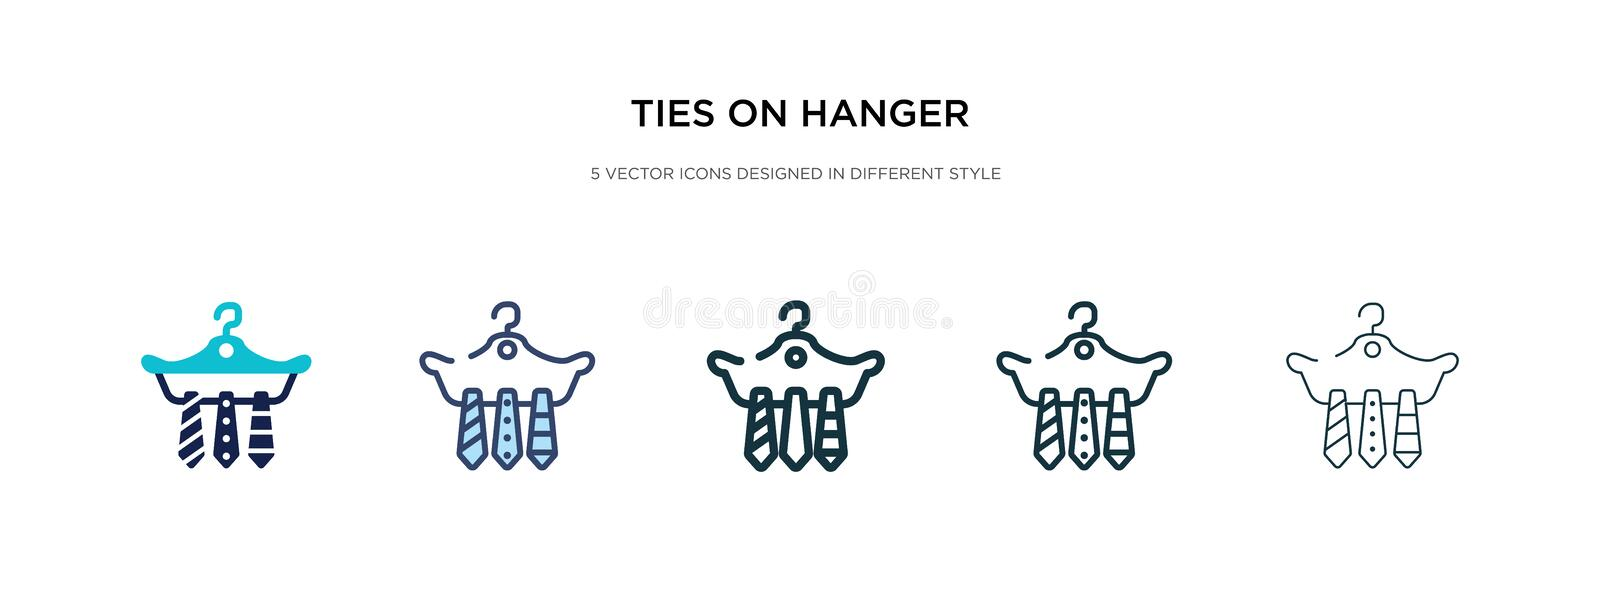 Ties on hanger icon in different style vector illustration. two colored and black ties on hanger vector icons designed in filled, vector illustration